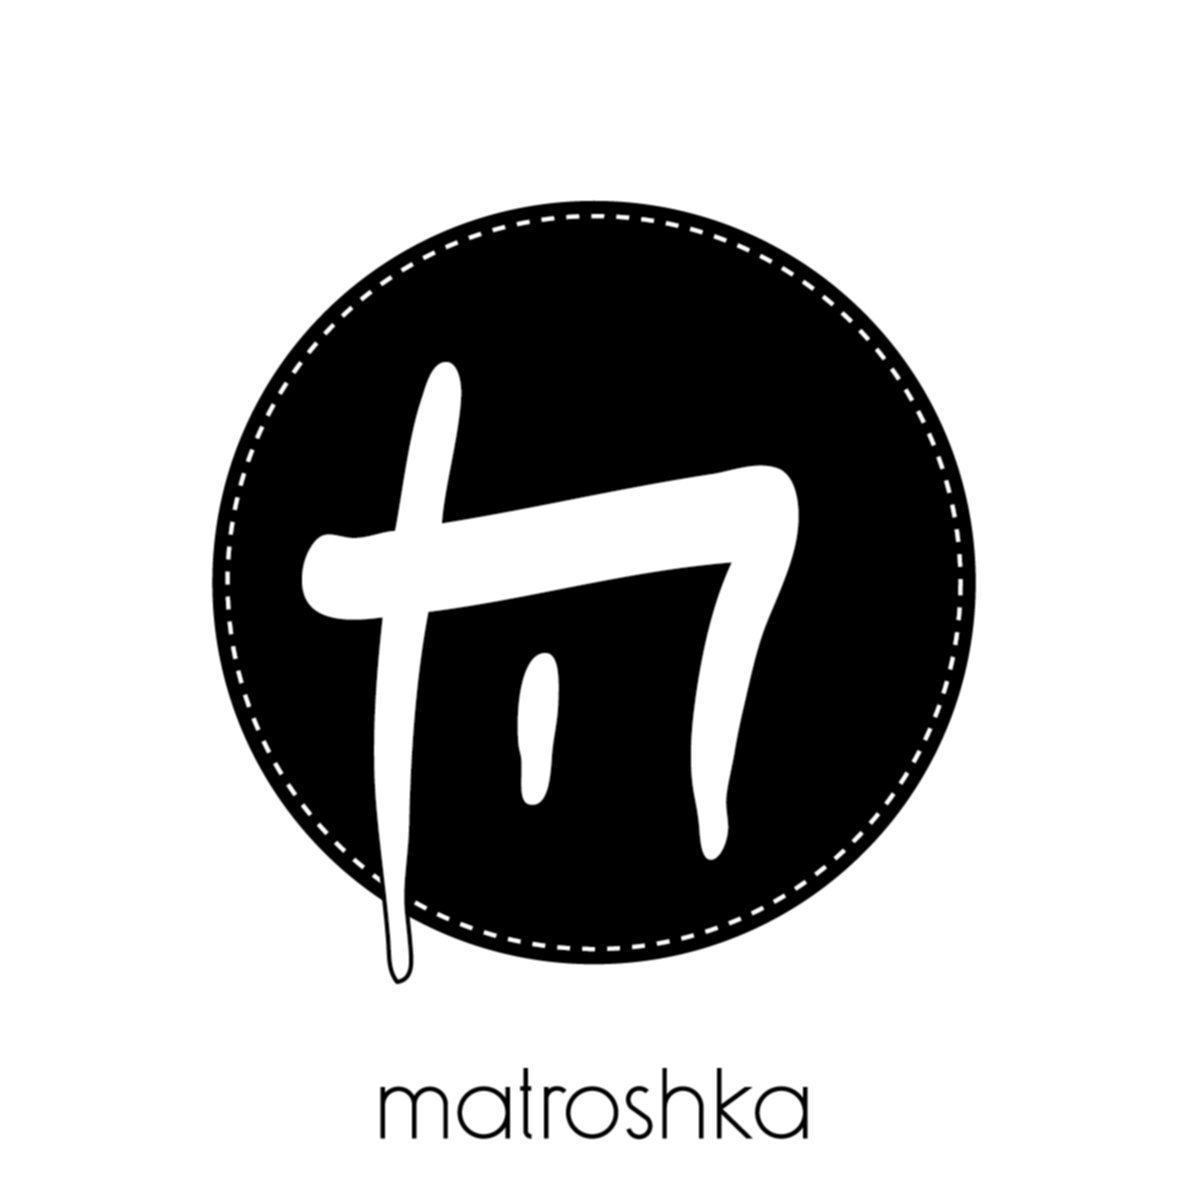 matroshka design